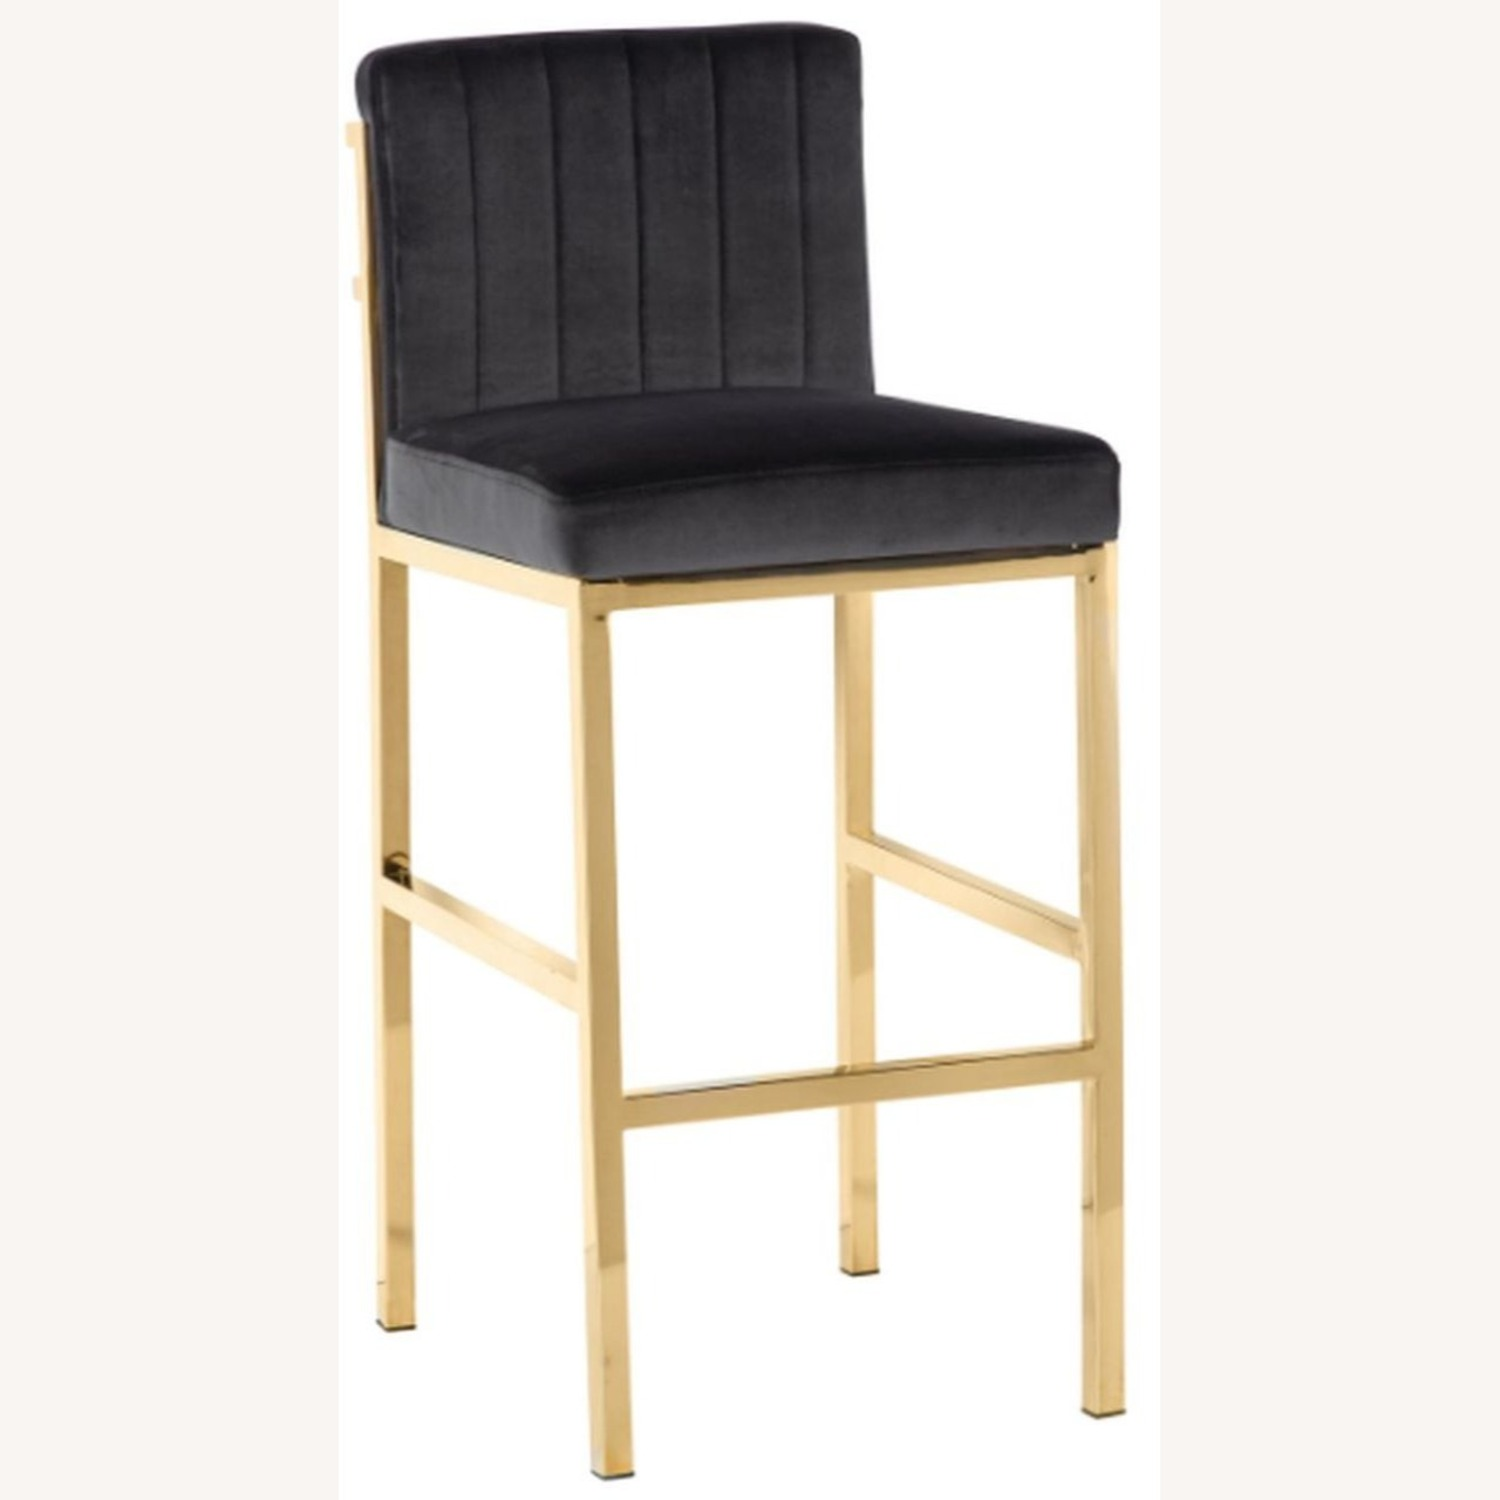 Bar Stool In Charcoal Grey W/ Rose Brass Base - image-0